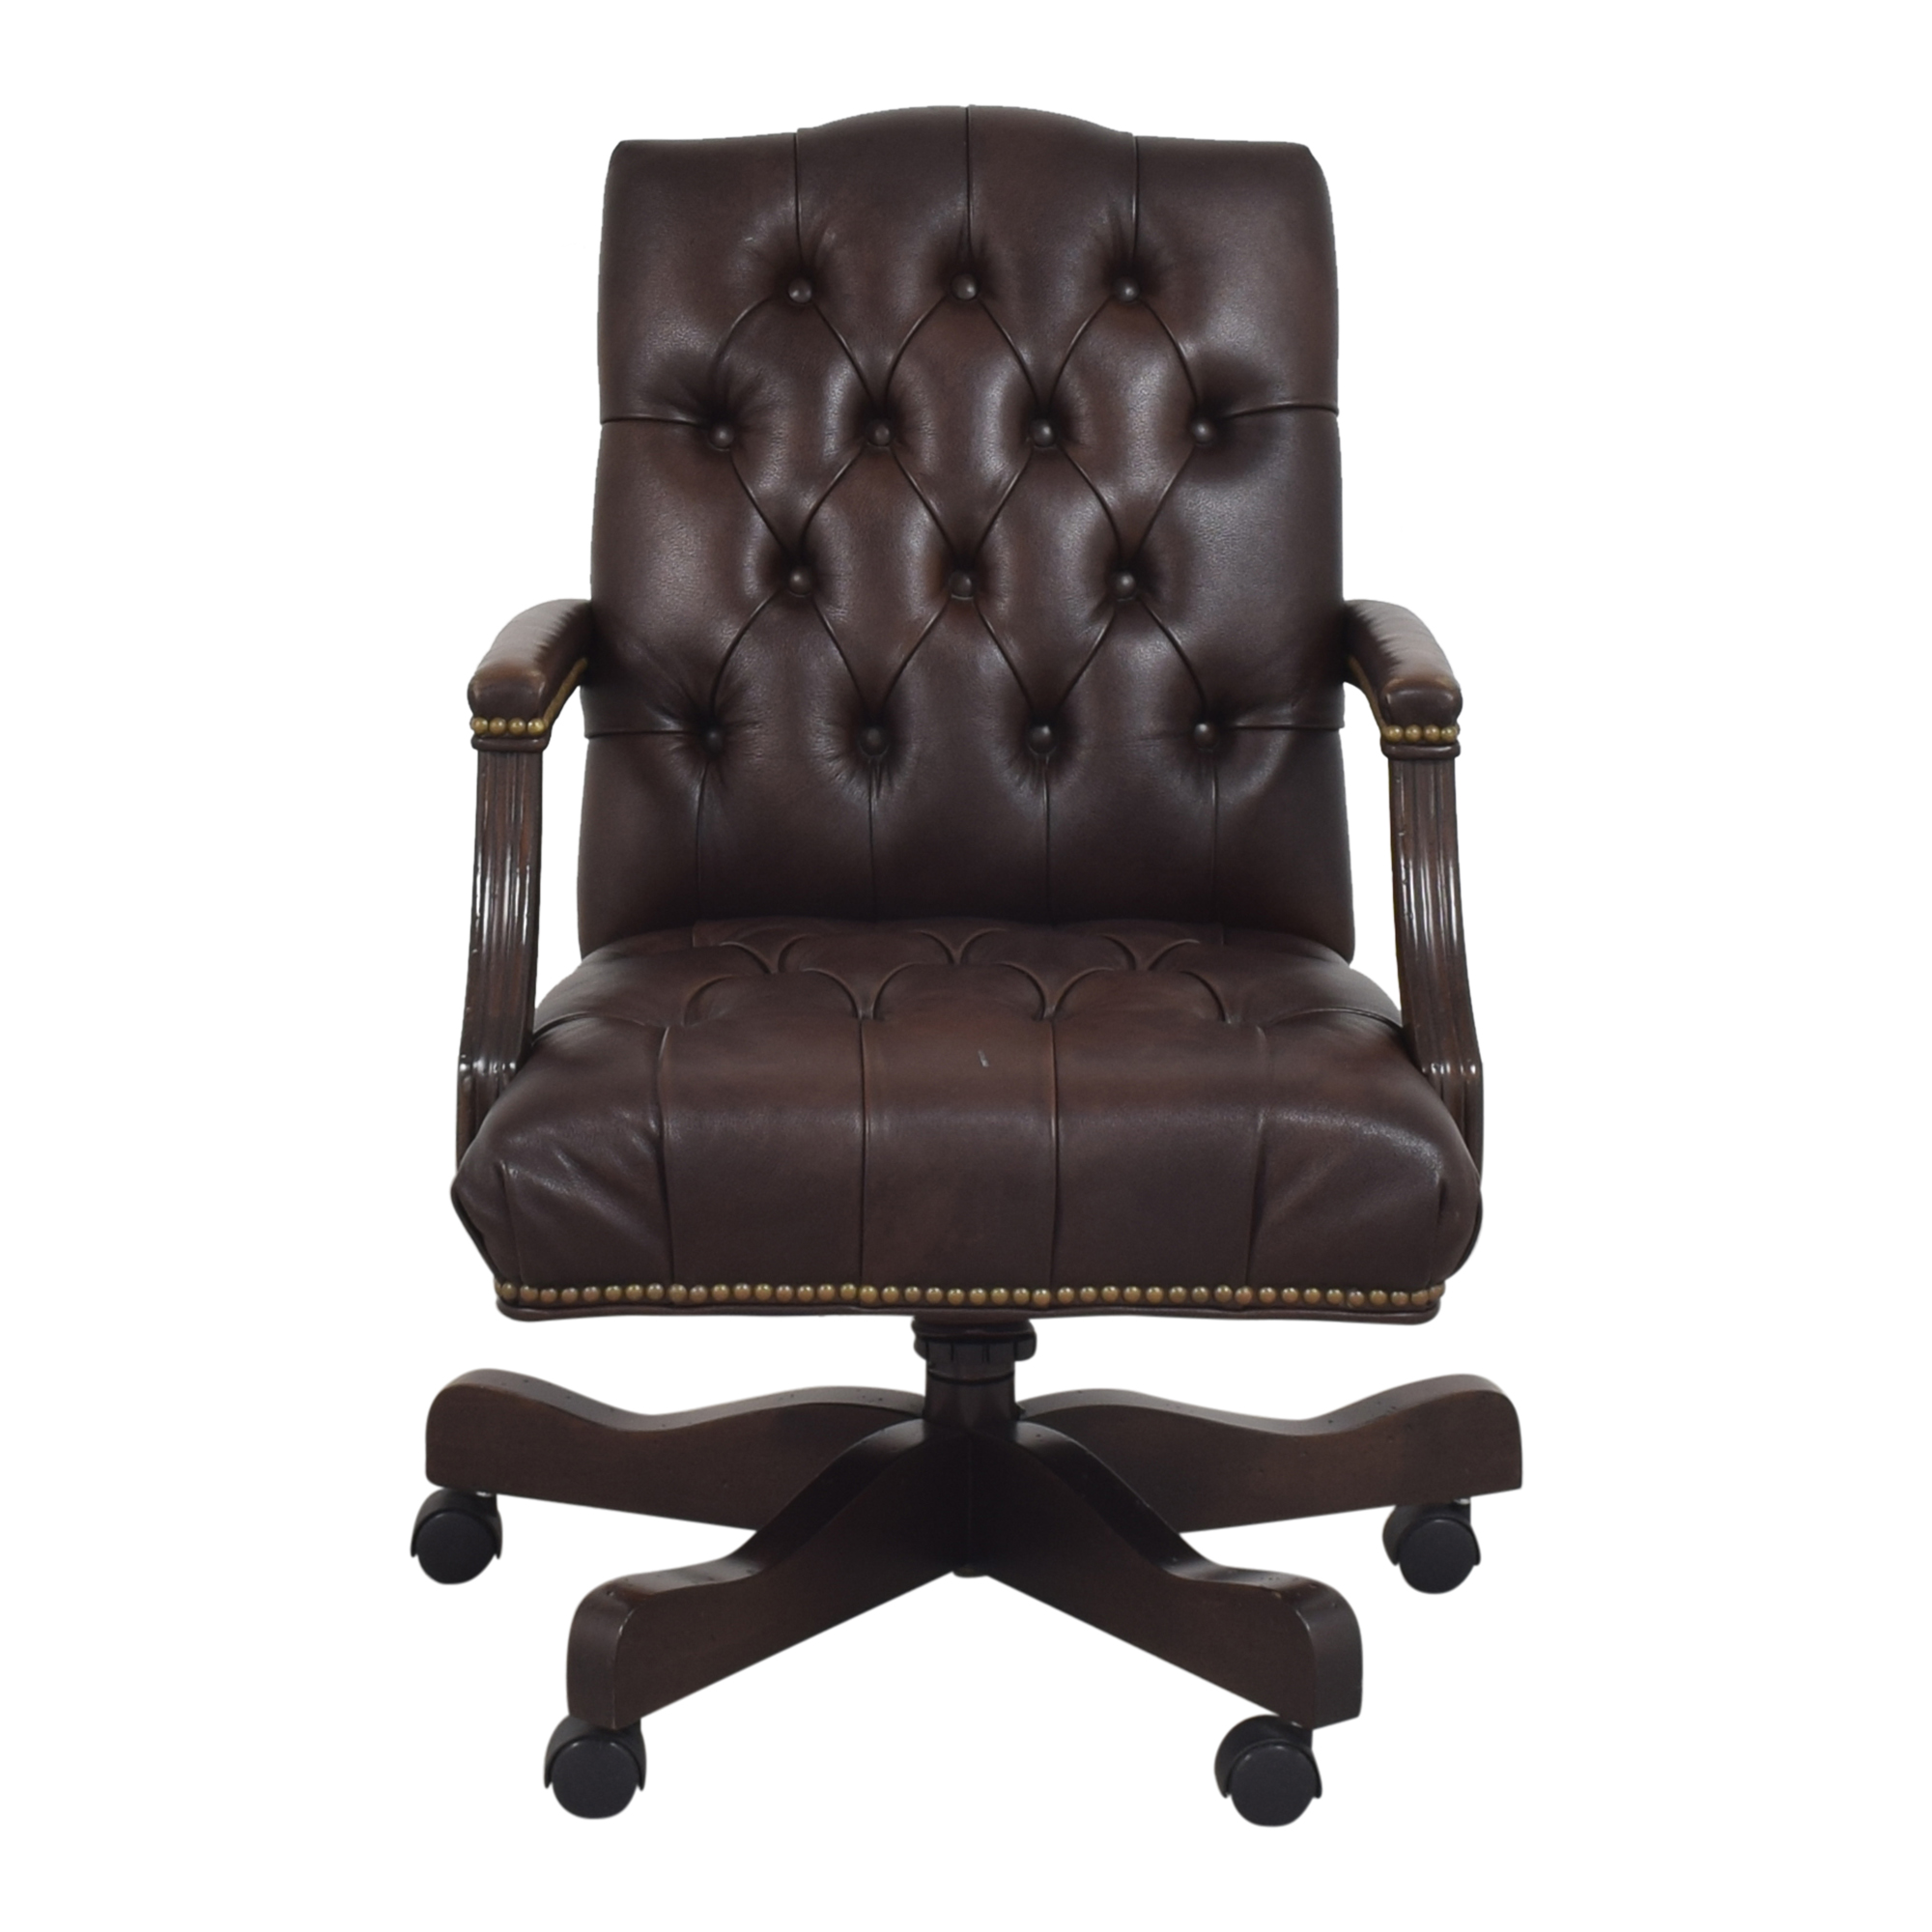 Ethan Allen Ethan Allen Grant Desk Chair price